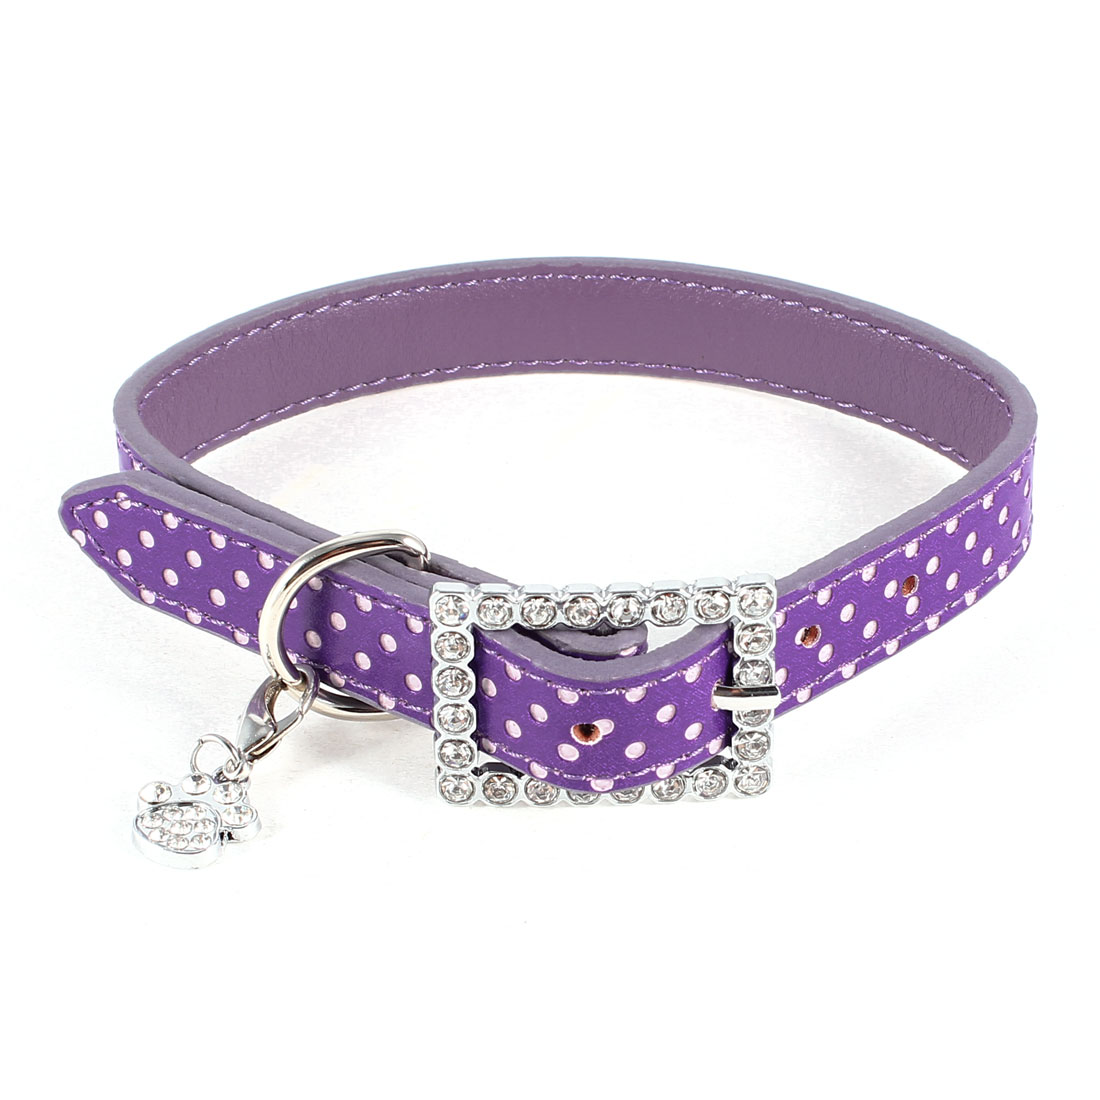 Purple Rhinestone Inlaid Dot Printed Adjustable Pet Dog Collar Necklace 43cm